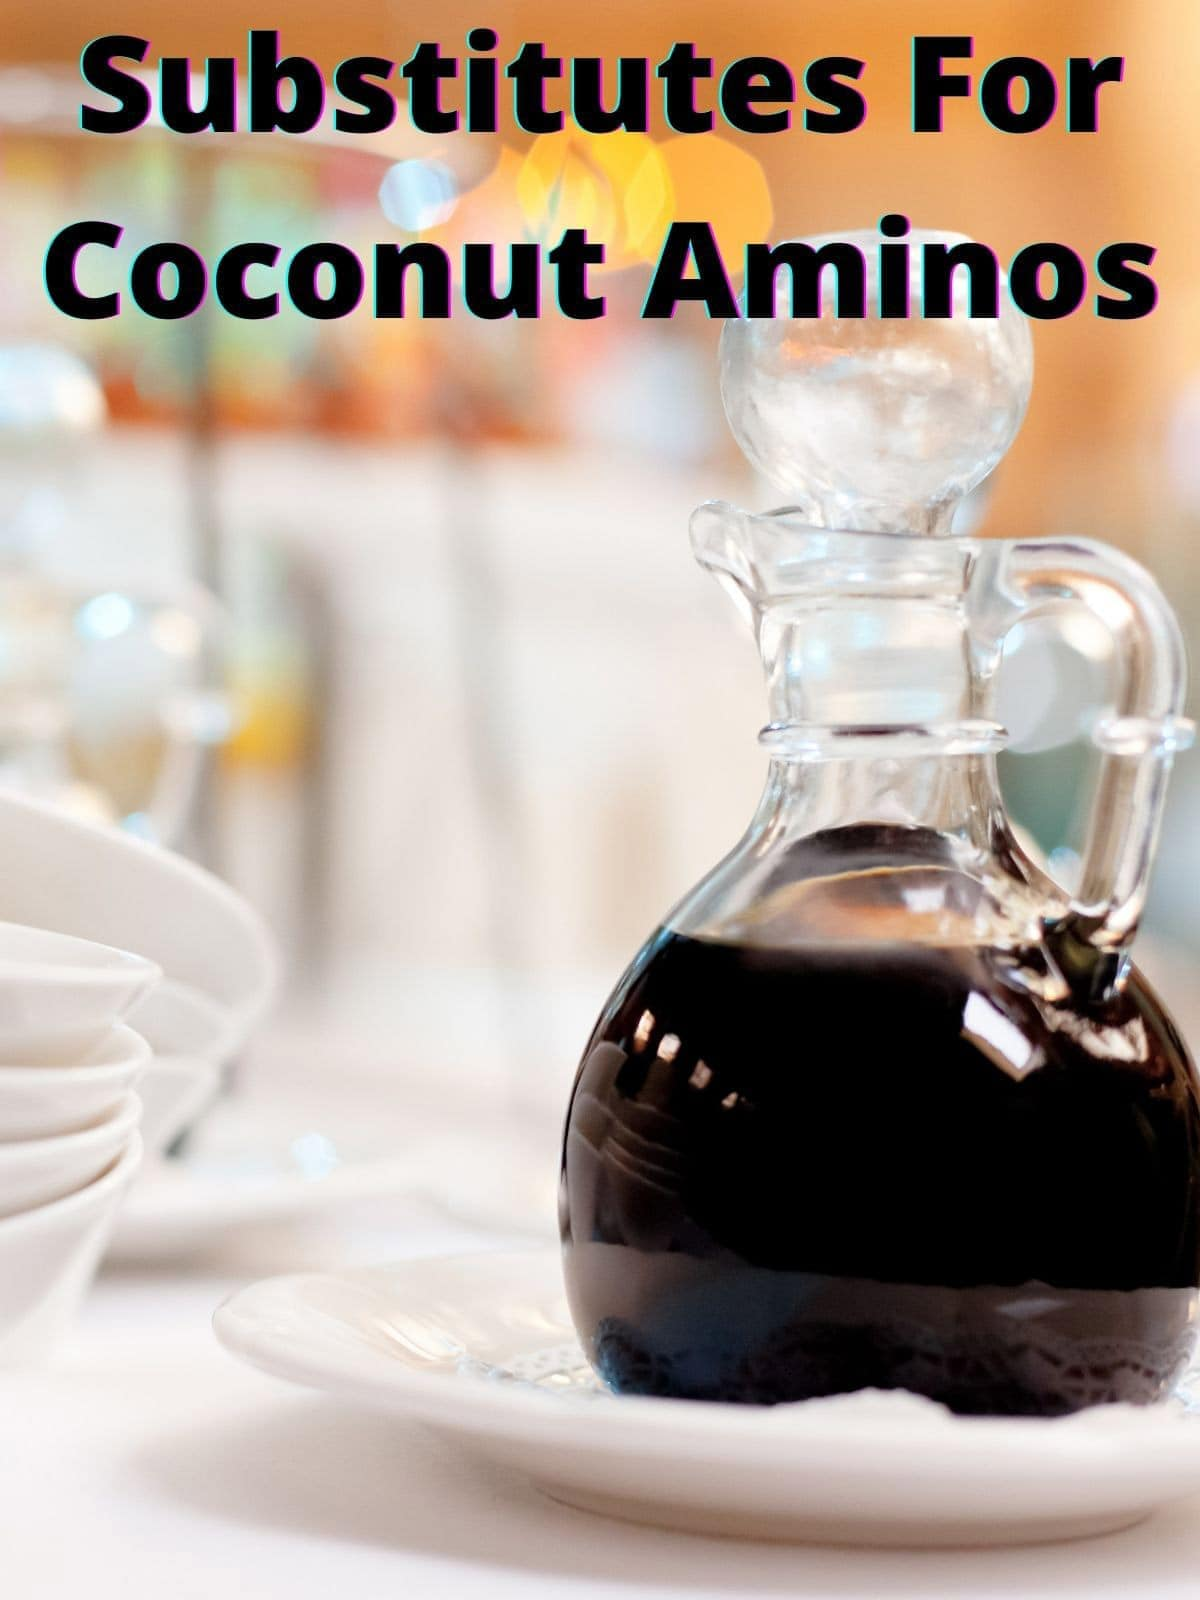 Substitutes For Coconut Aminos